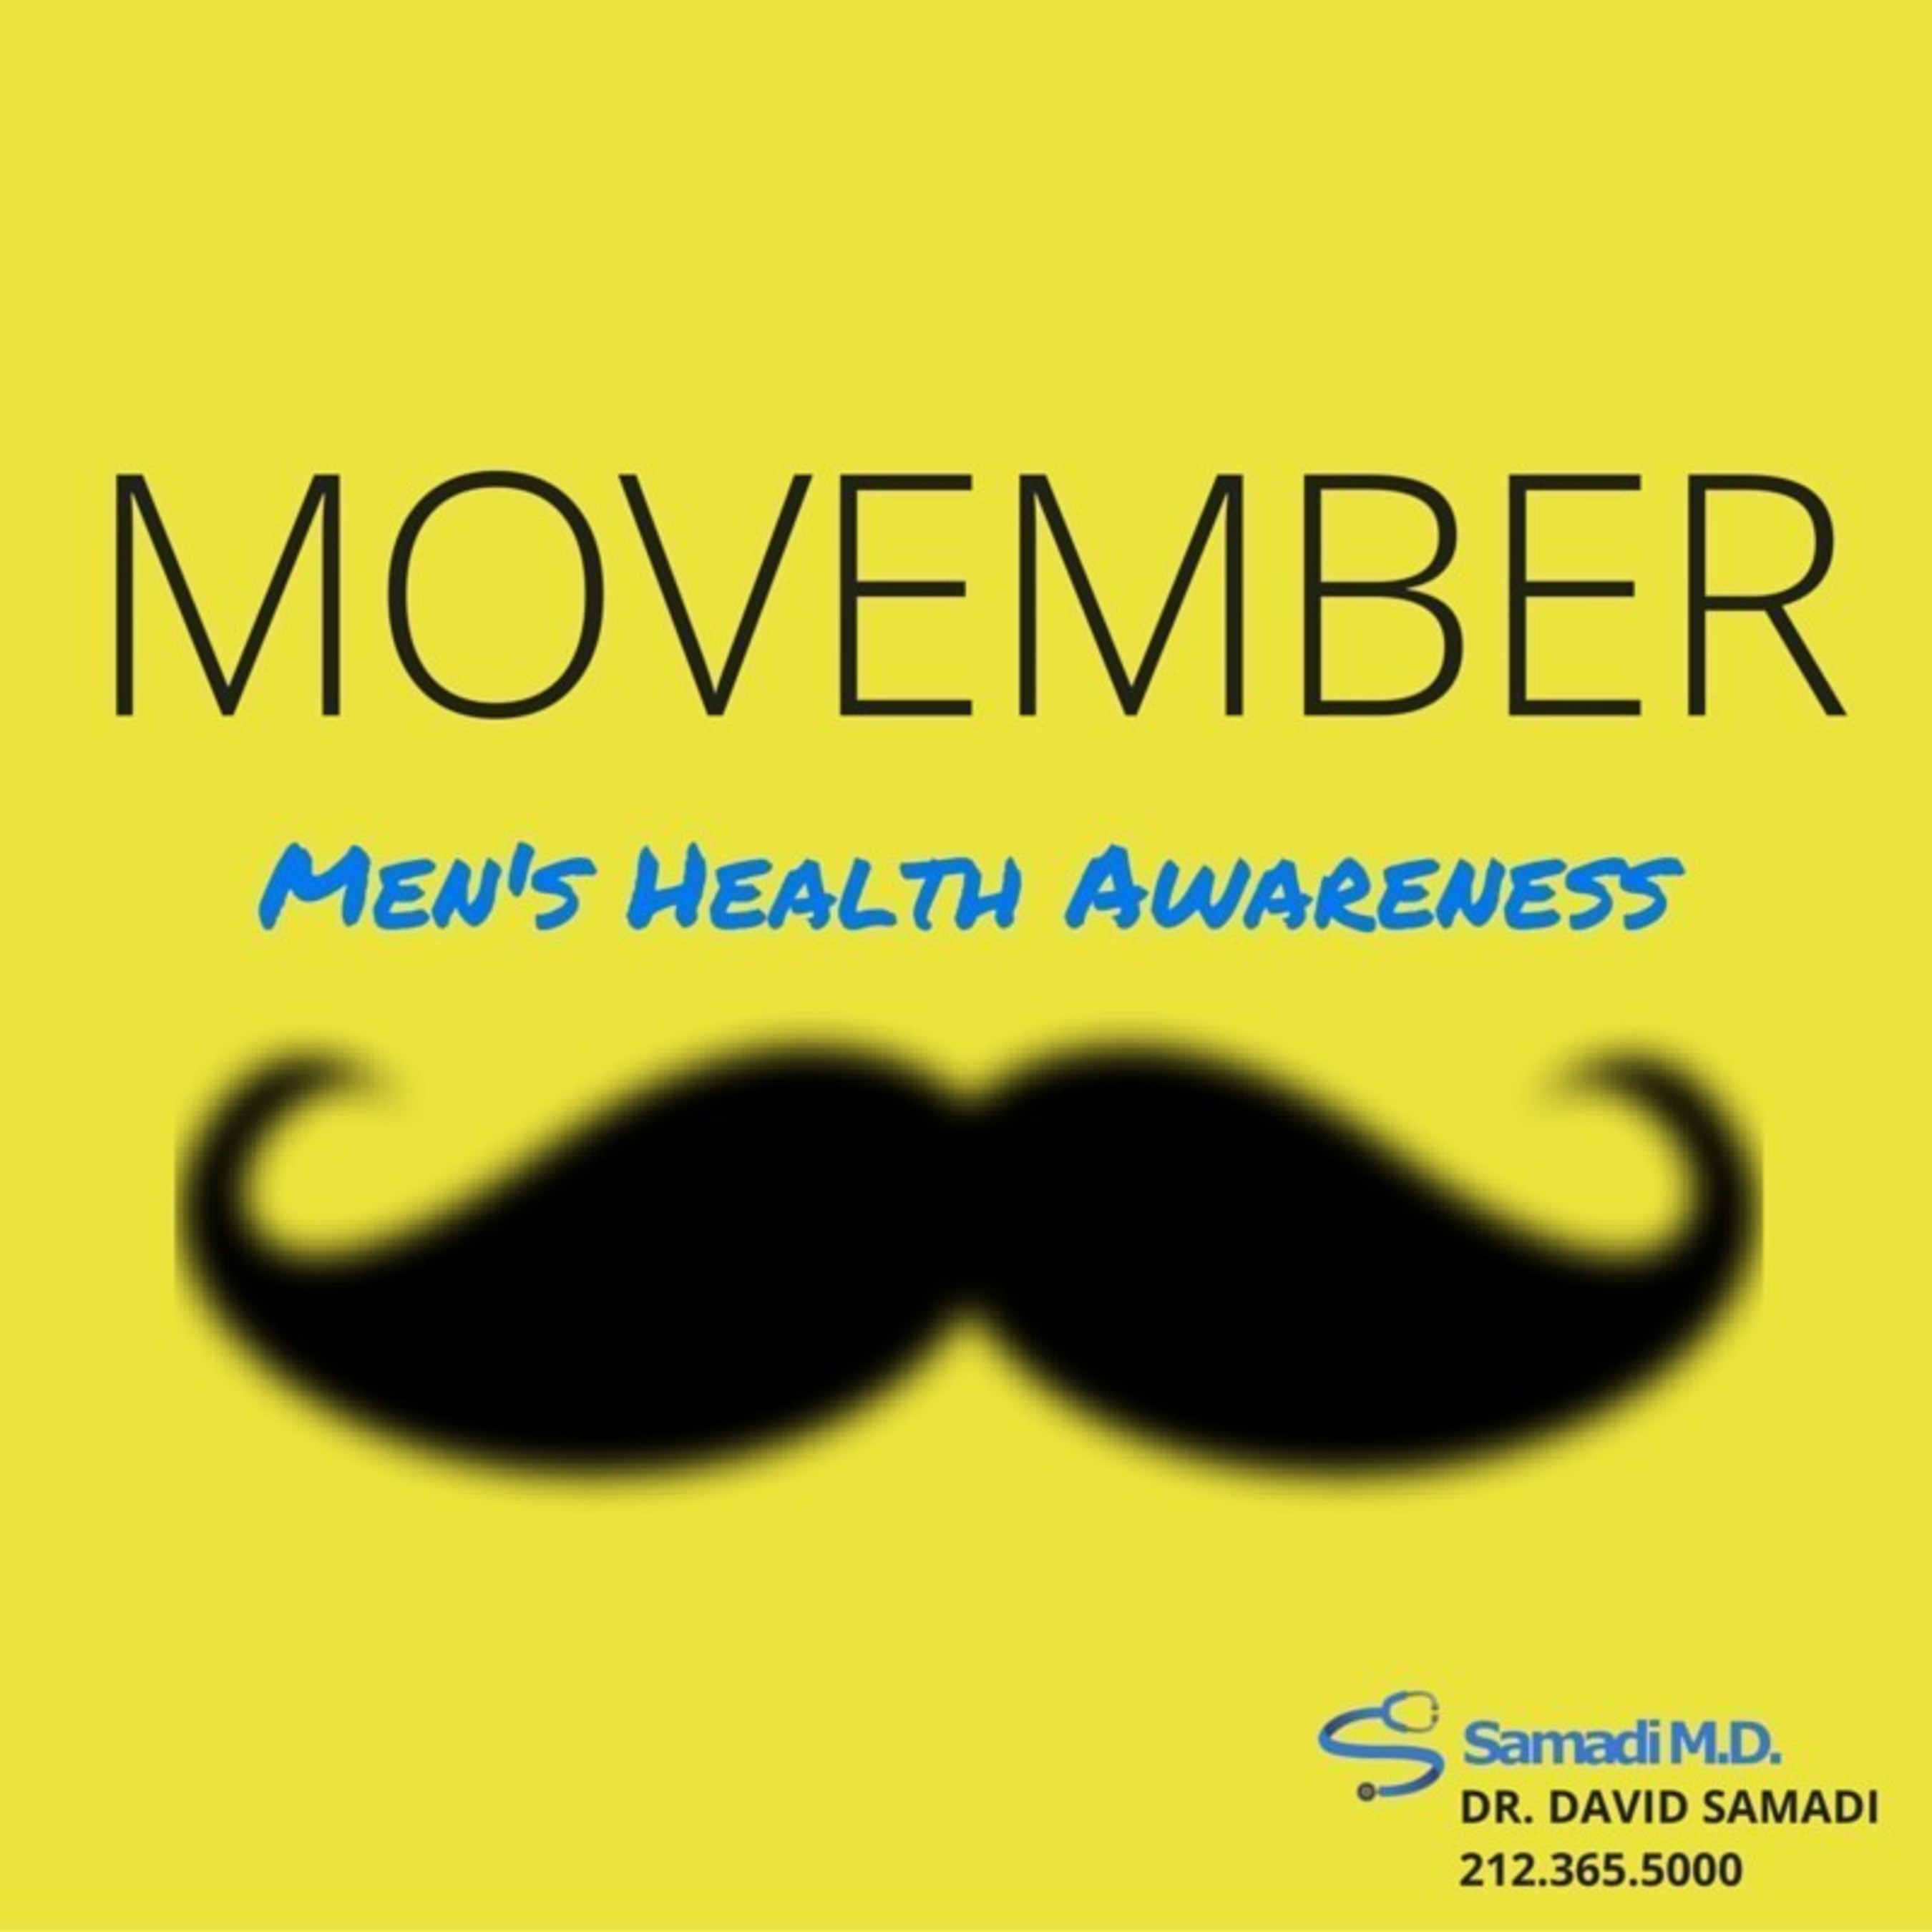 """November is known as """"Movember,"""" an awareness month dedicated to raising awareness and education around men's health and common cancers such as testicular cancer and prostate cancer. Patients newly diagnosed with prostate cancer or other urology issues can contact Dr. David Samadi for a consultation at 212.365.5000."""